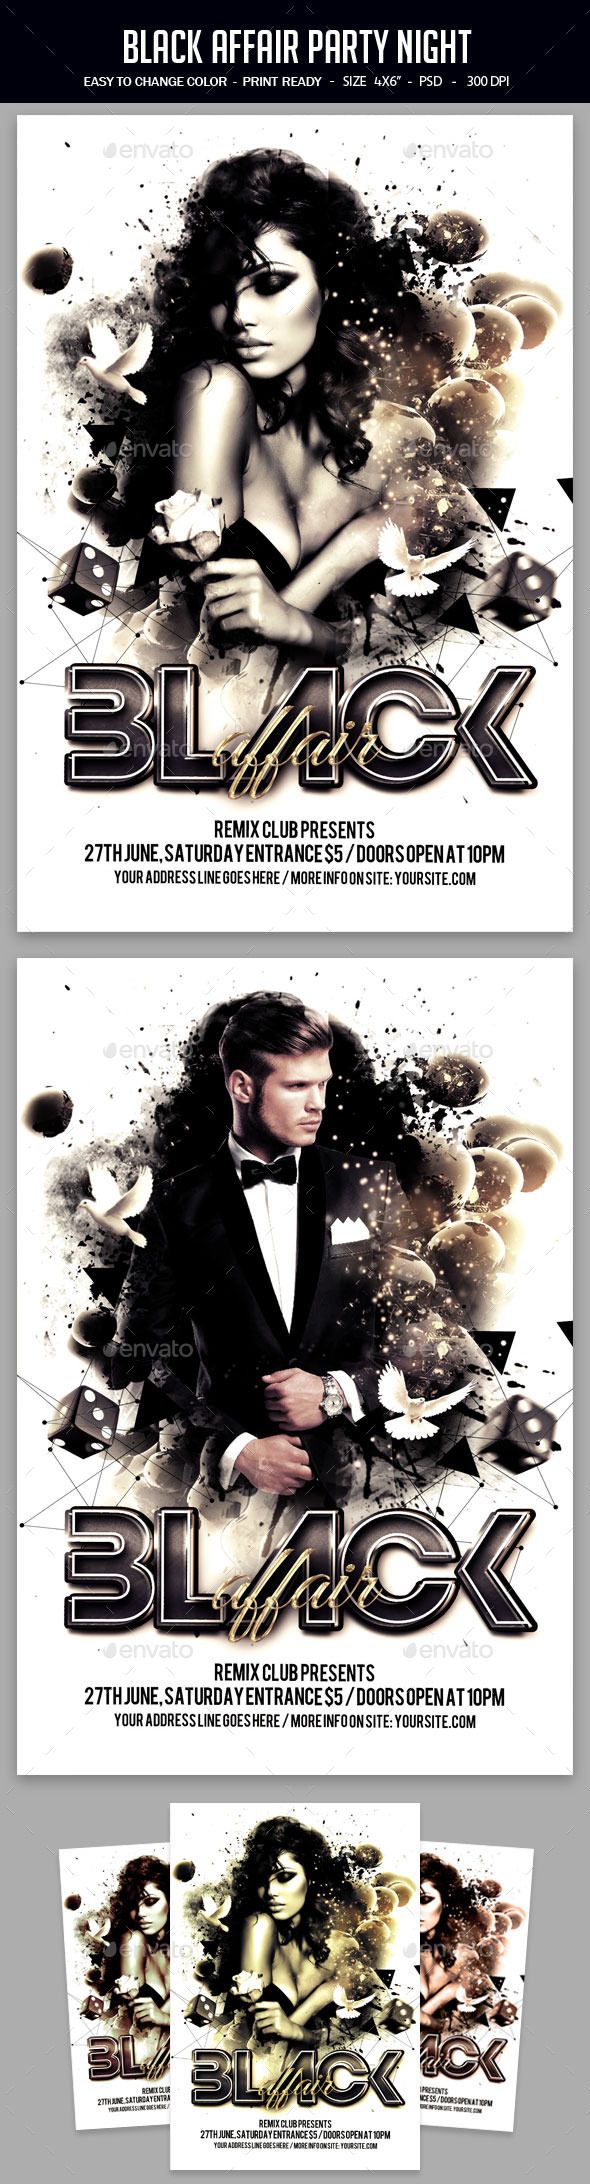 Black Affair Party Night - Clubs & Parties Events